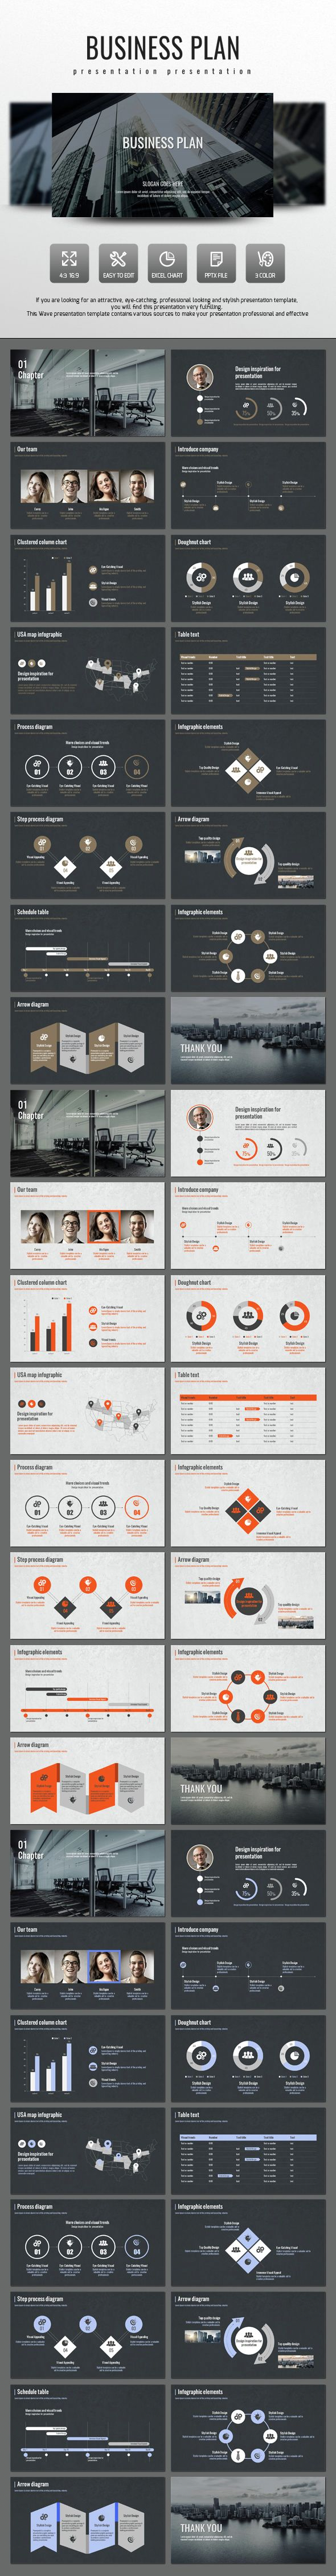 Business Plan (PowerPoint Templates)                                                                                                                                                                                 Plus